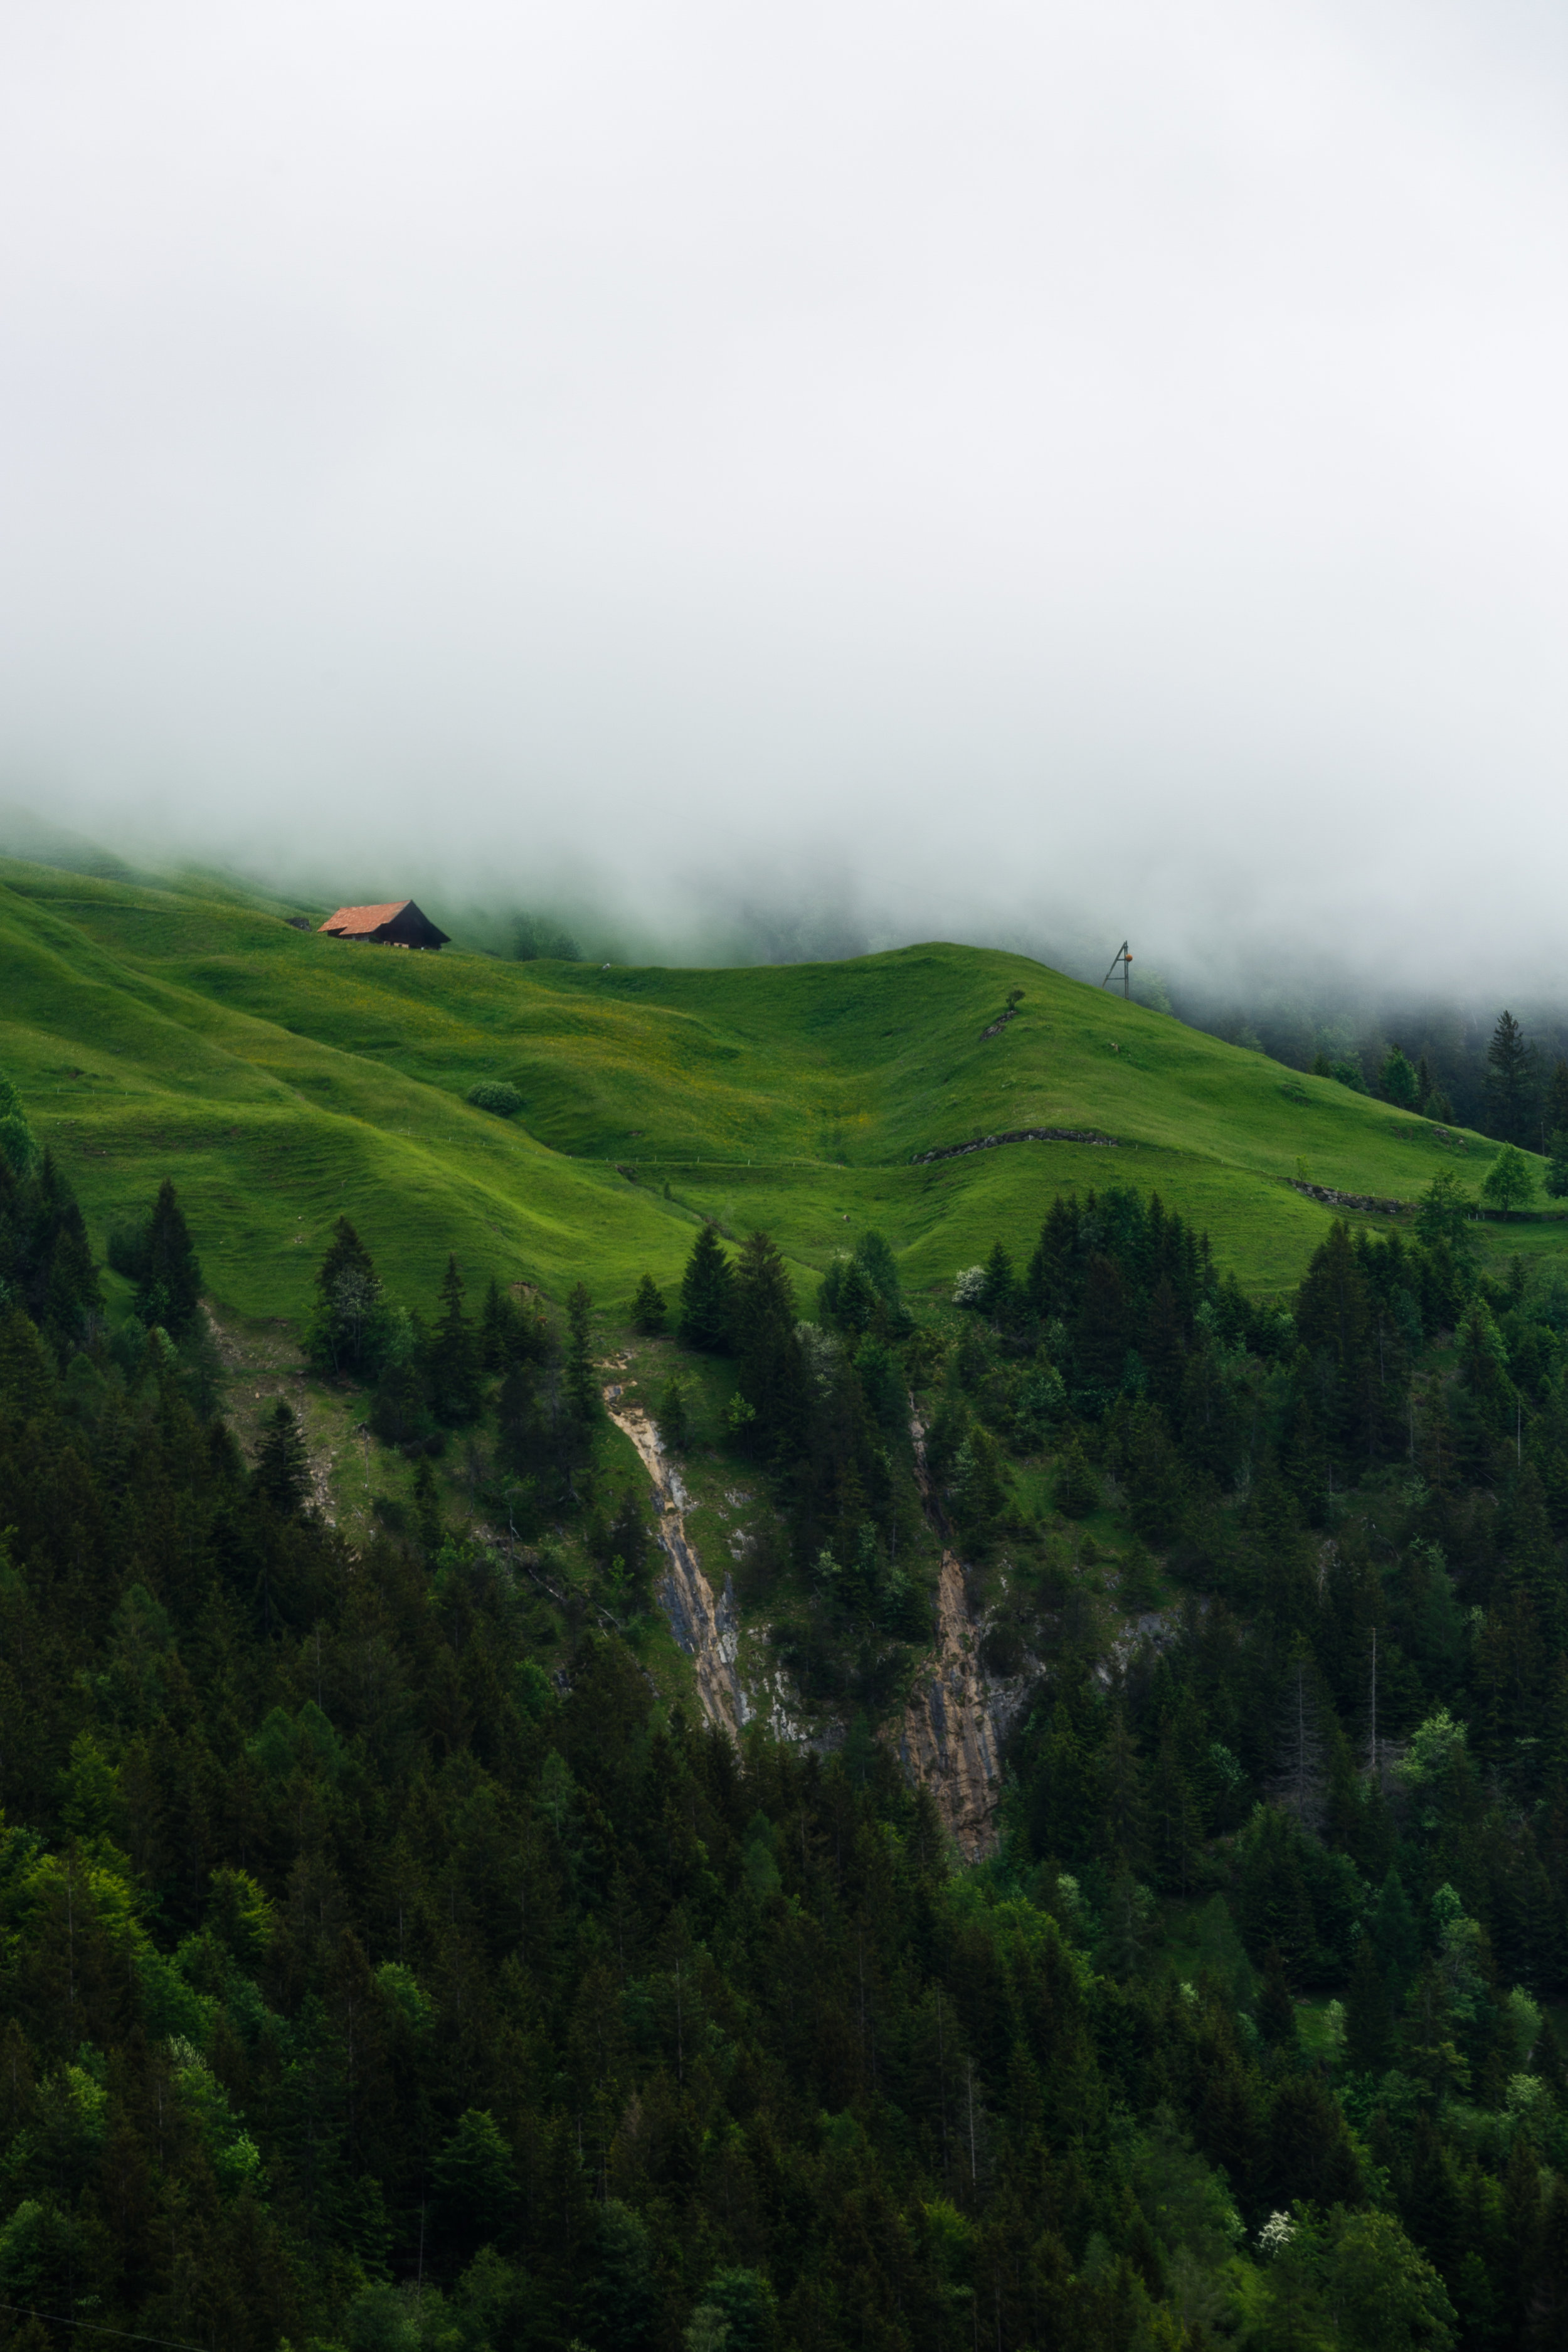 Clouds Hovering Low in the Valley Near Blausee